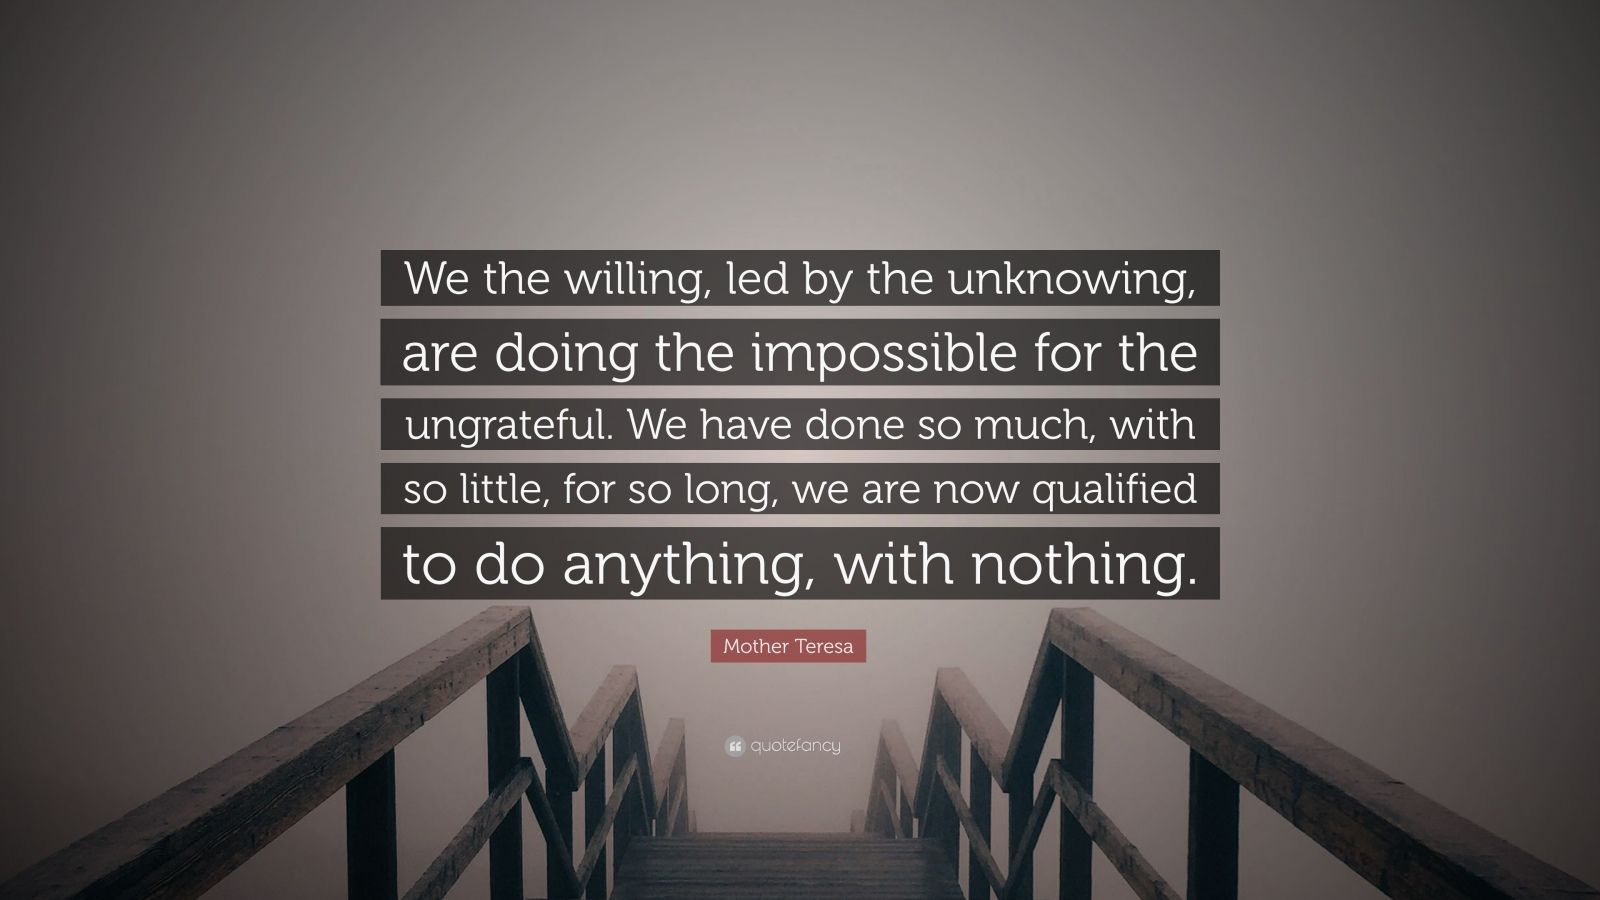 William Shakespeare Love Quotes Wallpaper Mother Teresa Quote We The Willing Led By The Unknowing